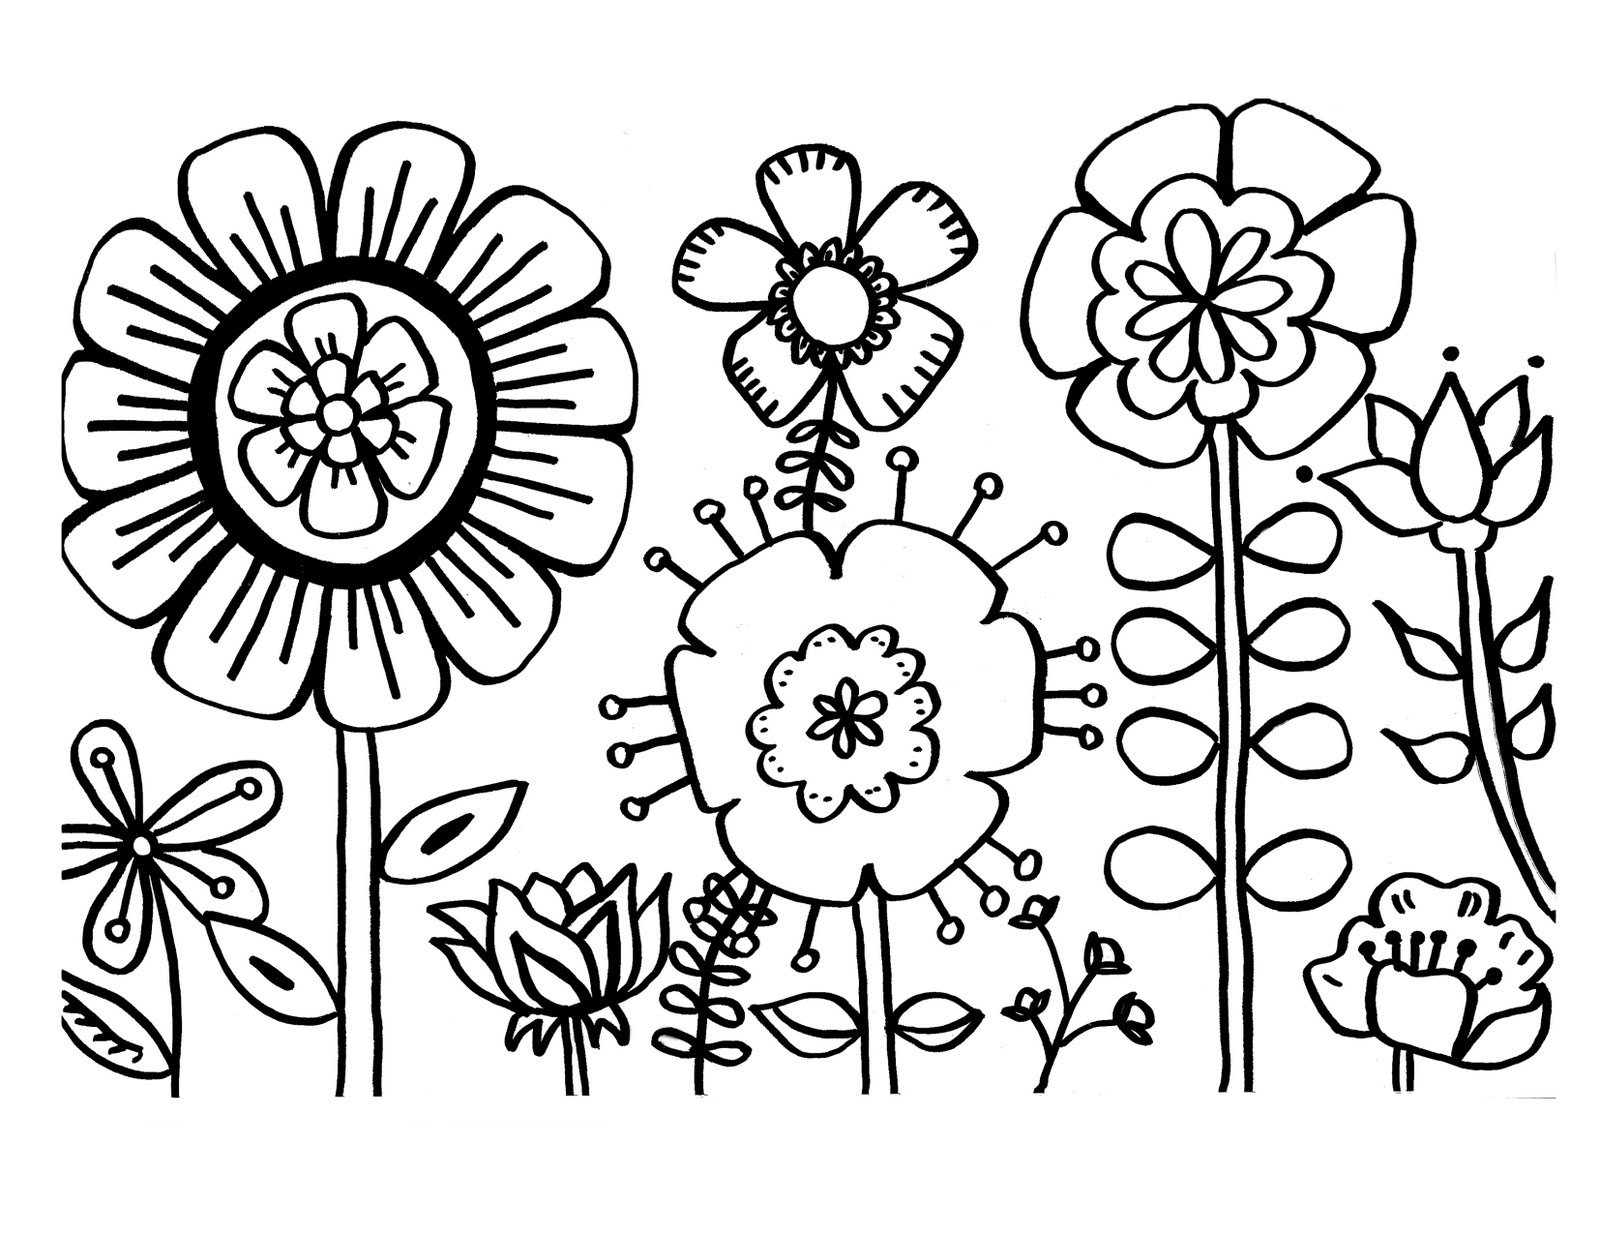 colouring pictures of flowers free flower colouring pages colour fun colouring flowers of pictures